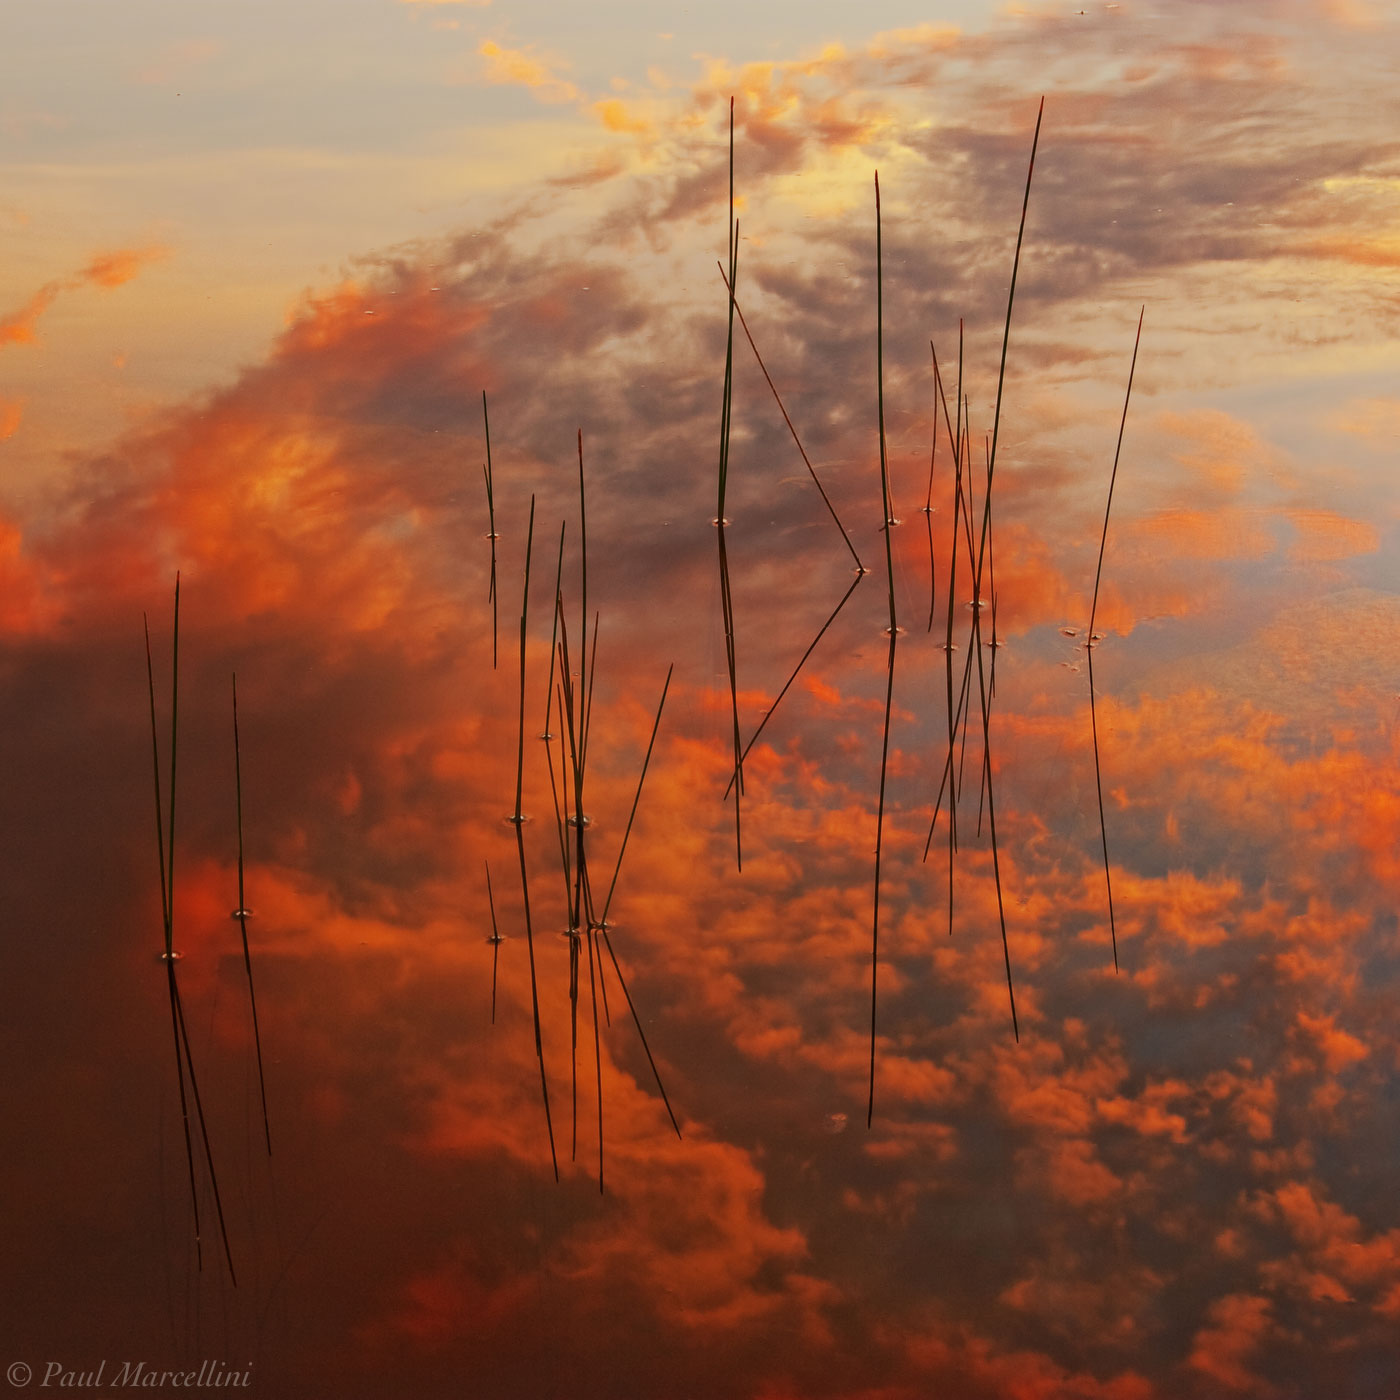 sunset, everglades, reflection, reeds, water, Florida, nature, photography, florida national parks, photo